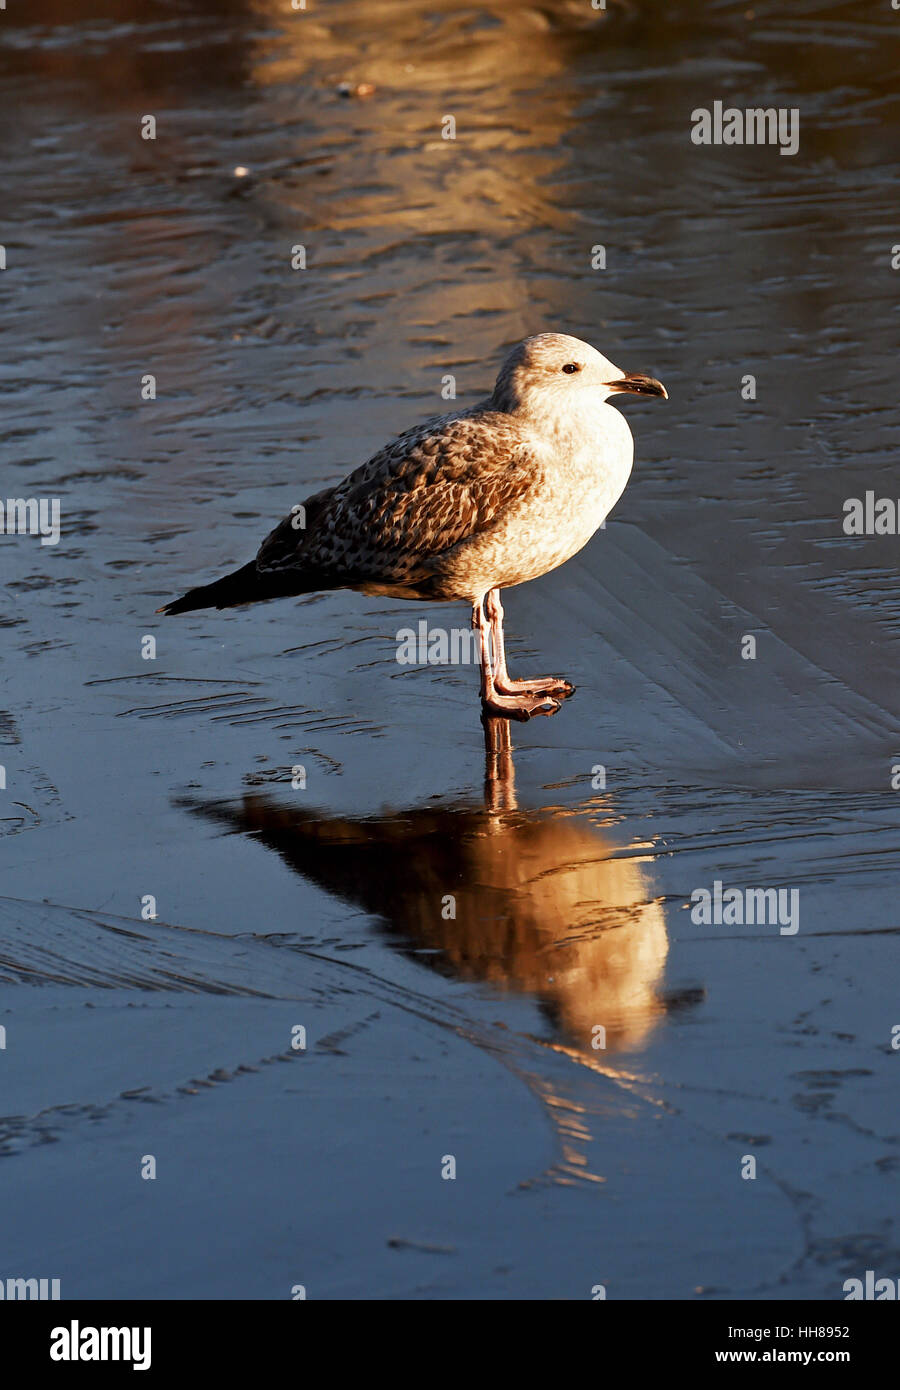 Brighton UK 18th January 2017 - Young seagulls have trouble keeping their feet on the ice on Queens Park pond in - Stock Image